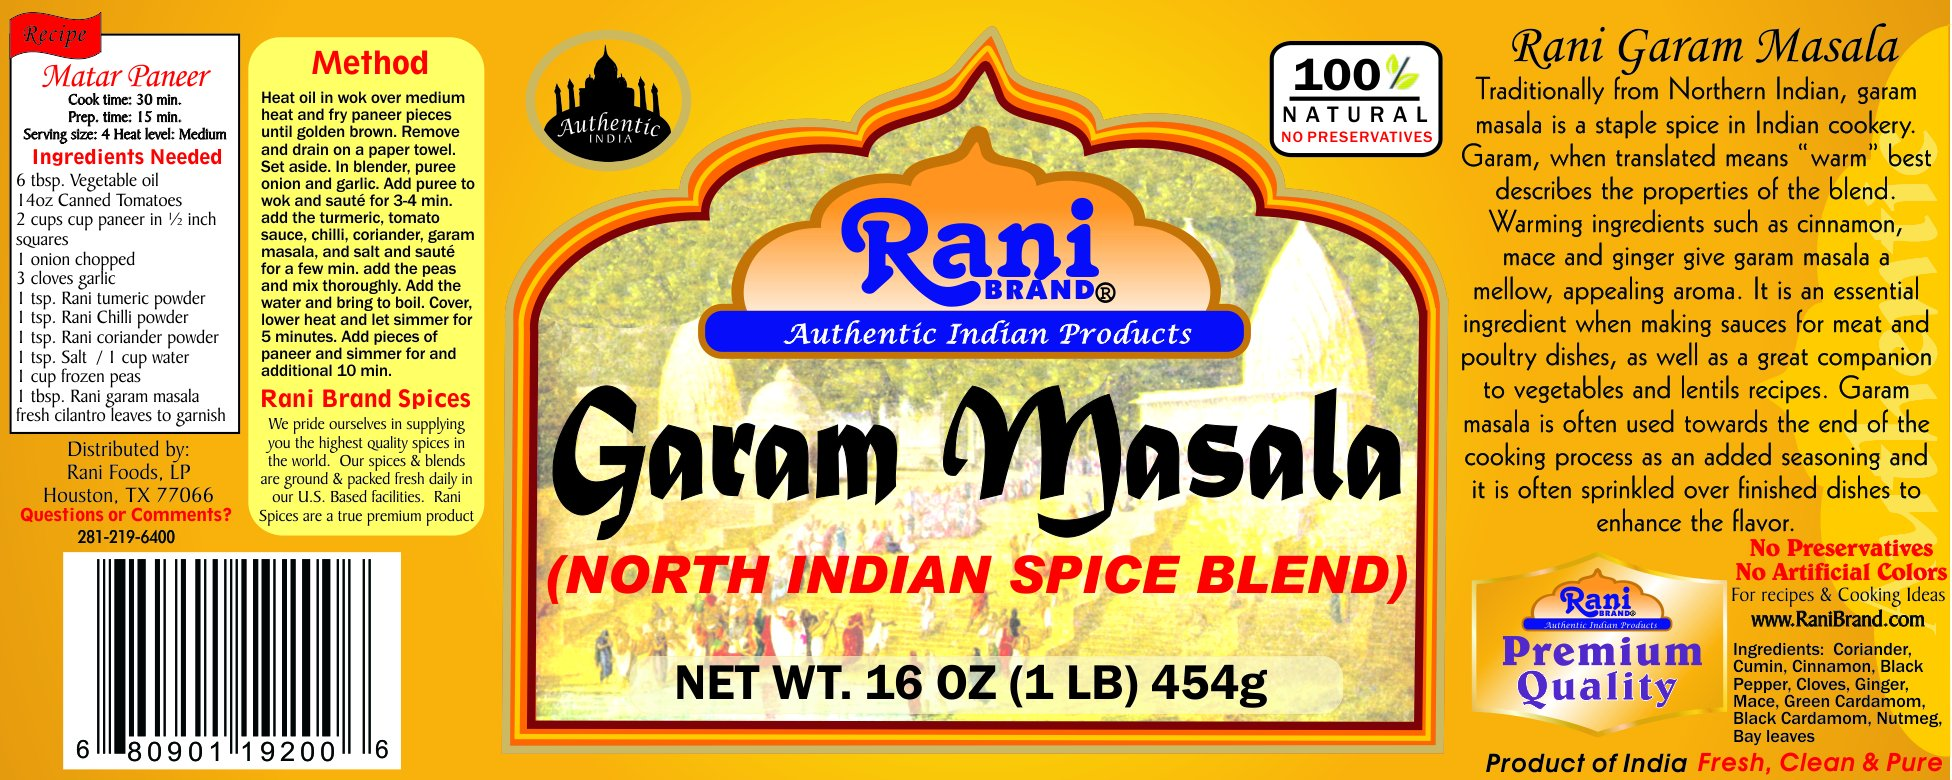 Rani Garam Masala Indian 11 Spice Blend 1lb (16oz) 454g ~ All Natural | Vegan | Gluten Free Ingredients | Salt Free | NON-GMO